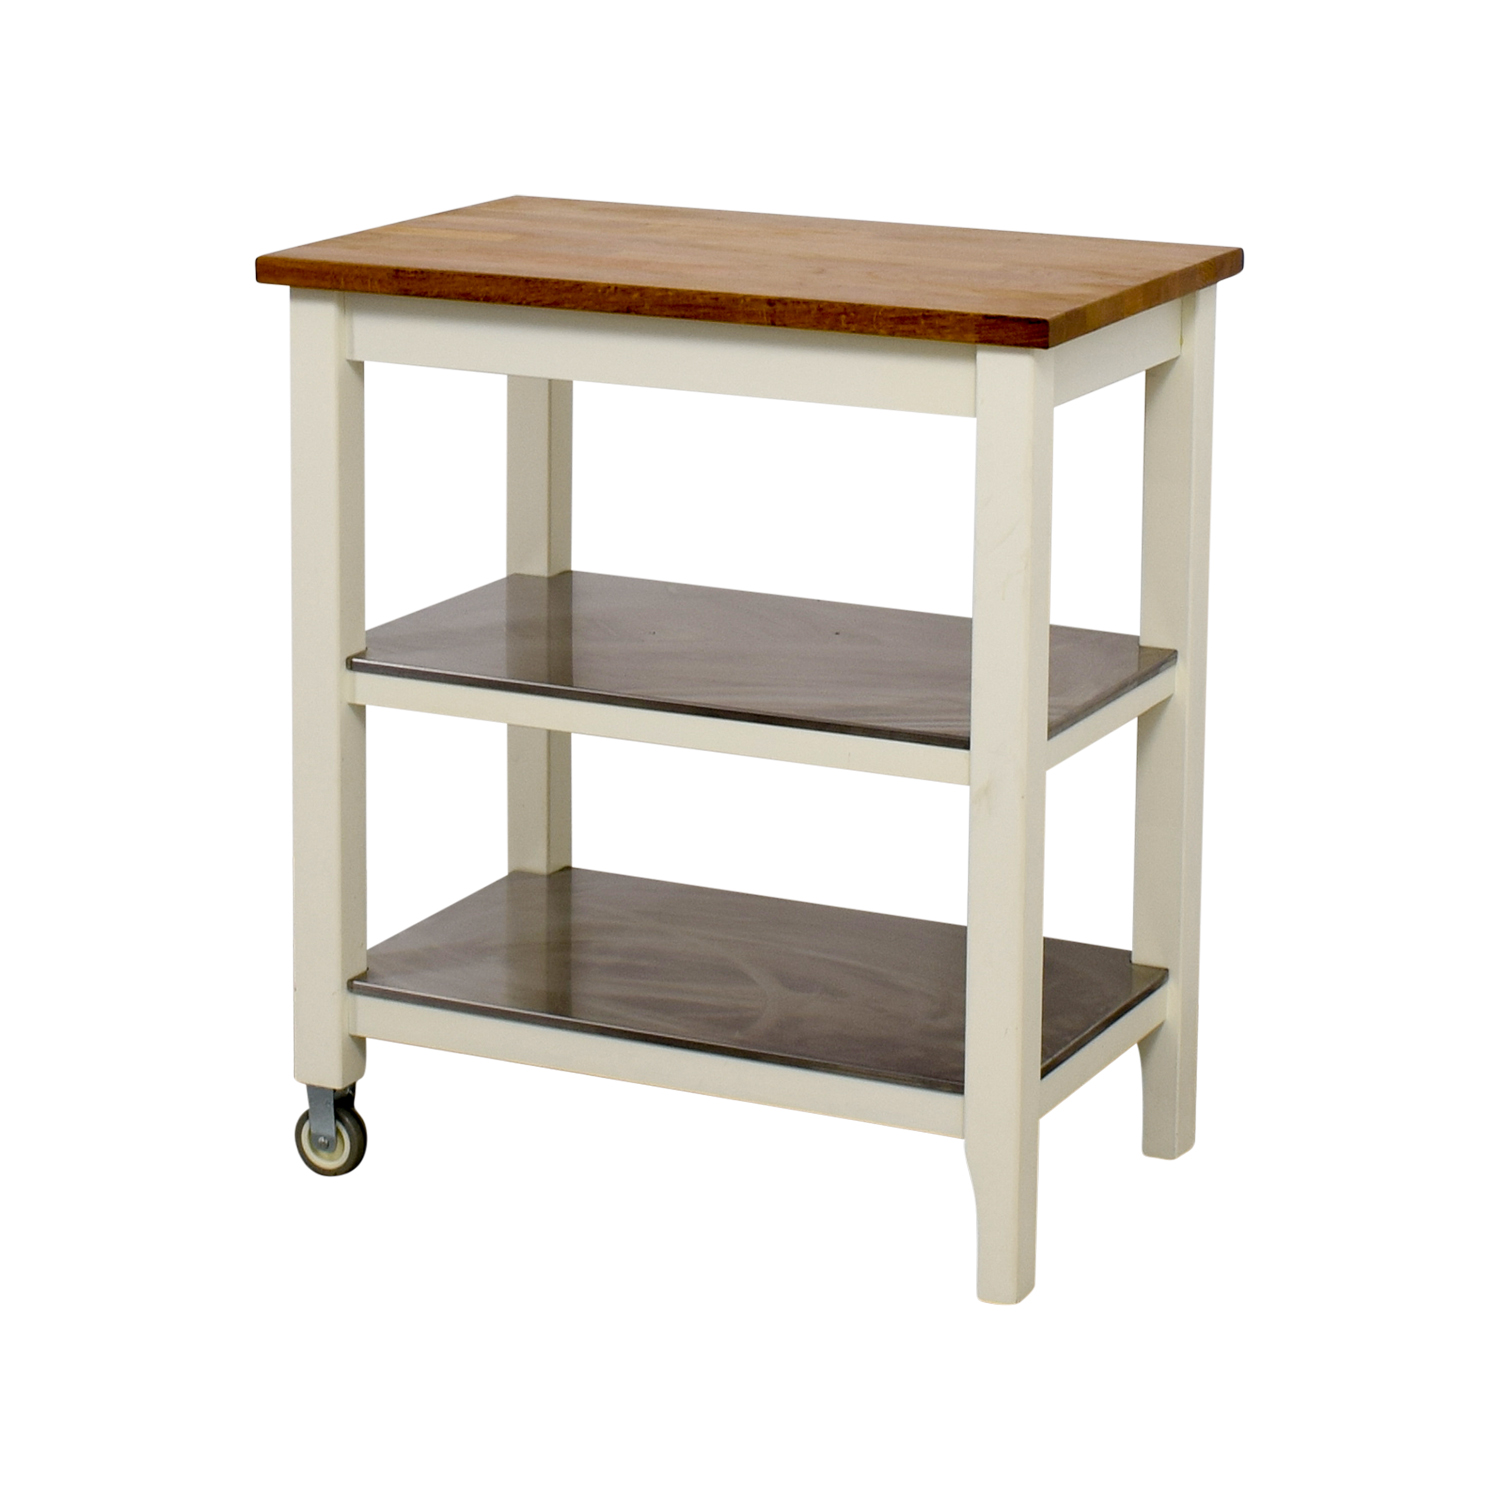 Ikea Tables Kitchen: IKEA IKEA Stenstorp Kitchen Cart / Tables